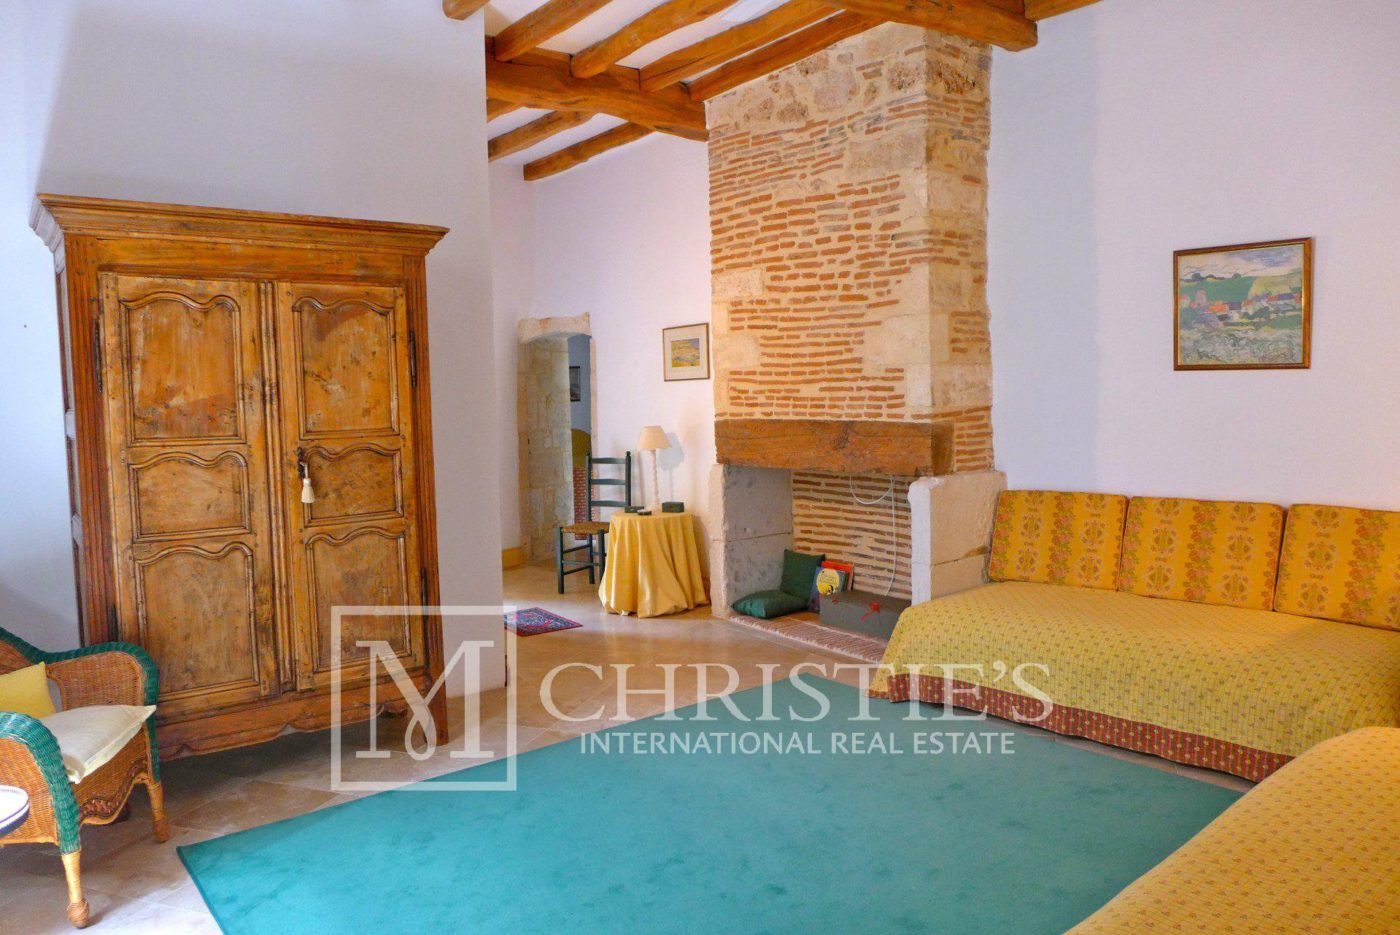 Bedroom - Domaine with Organic Vineyard In AOC Cahors